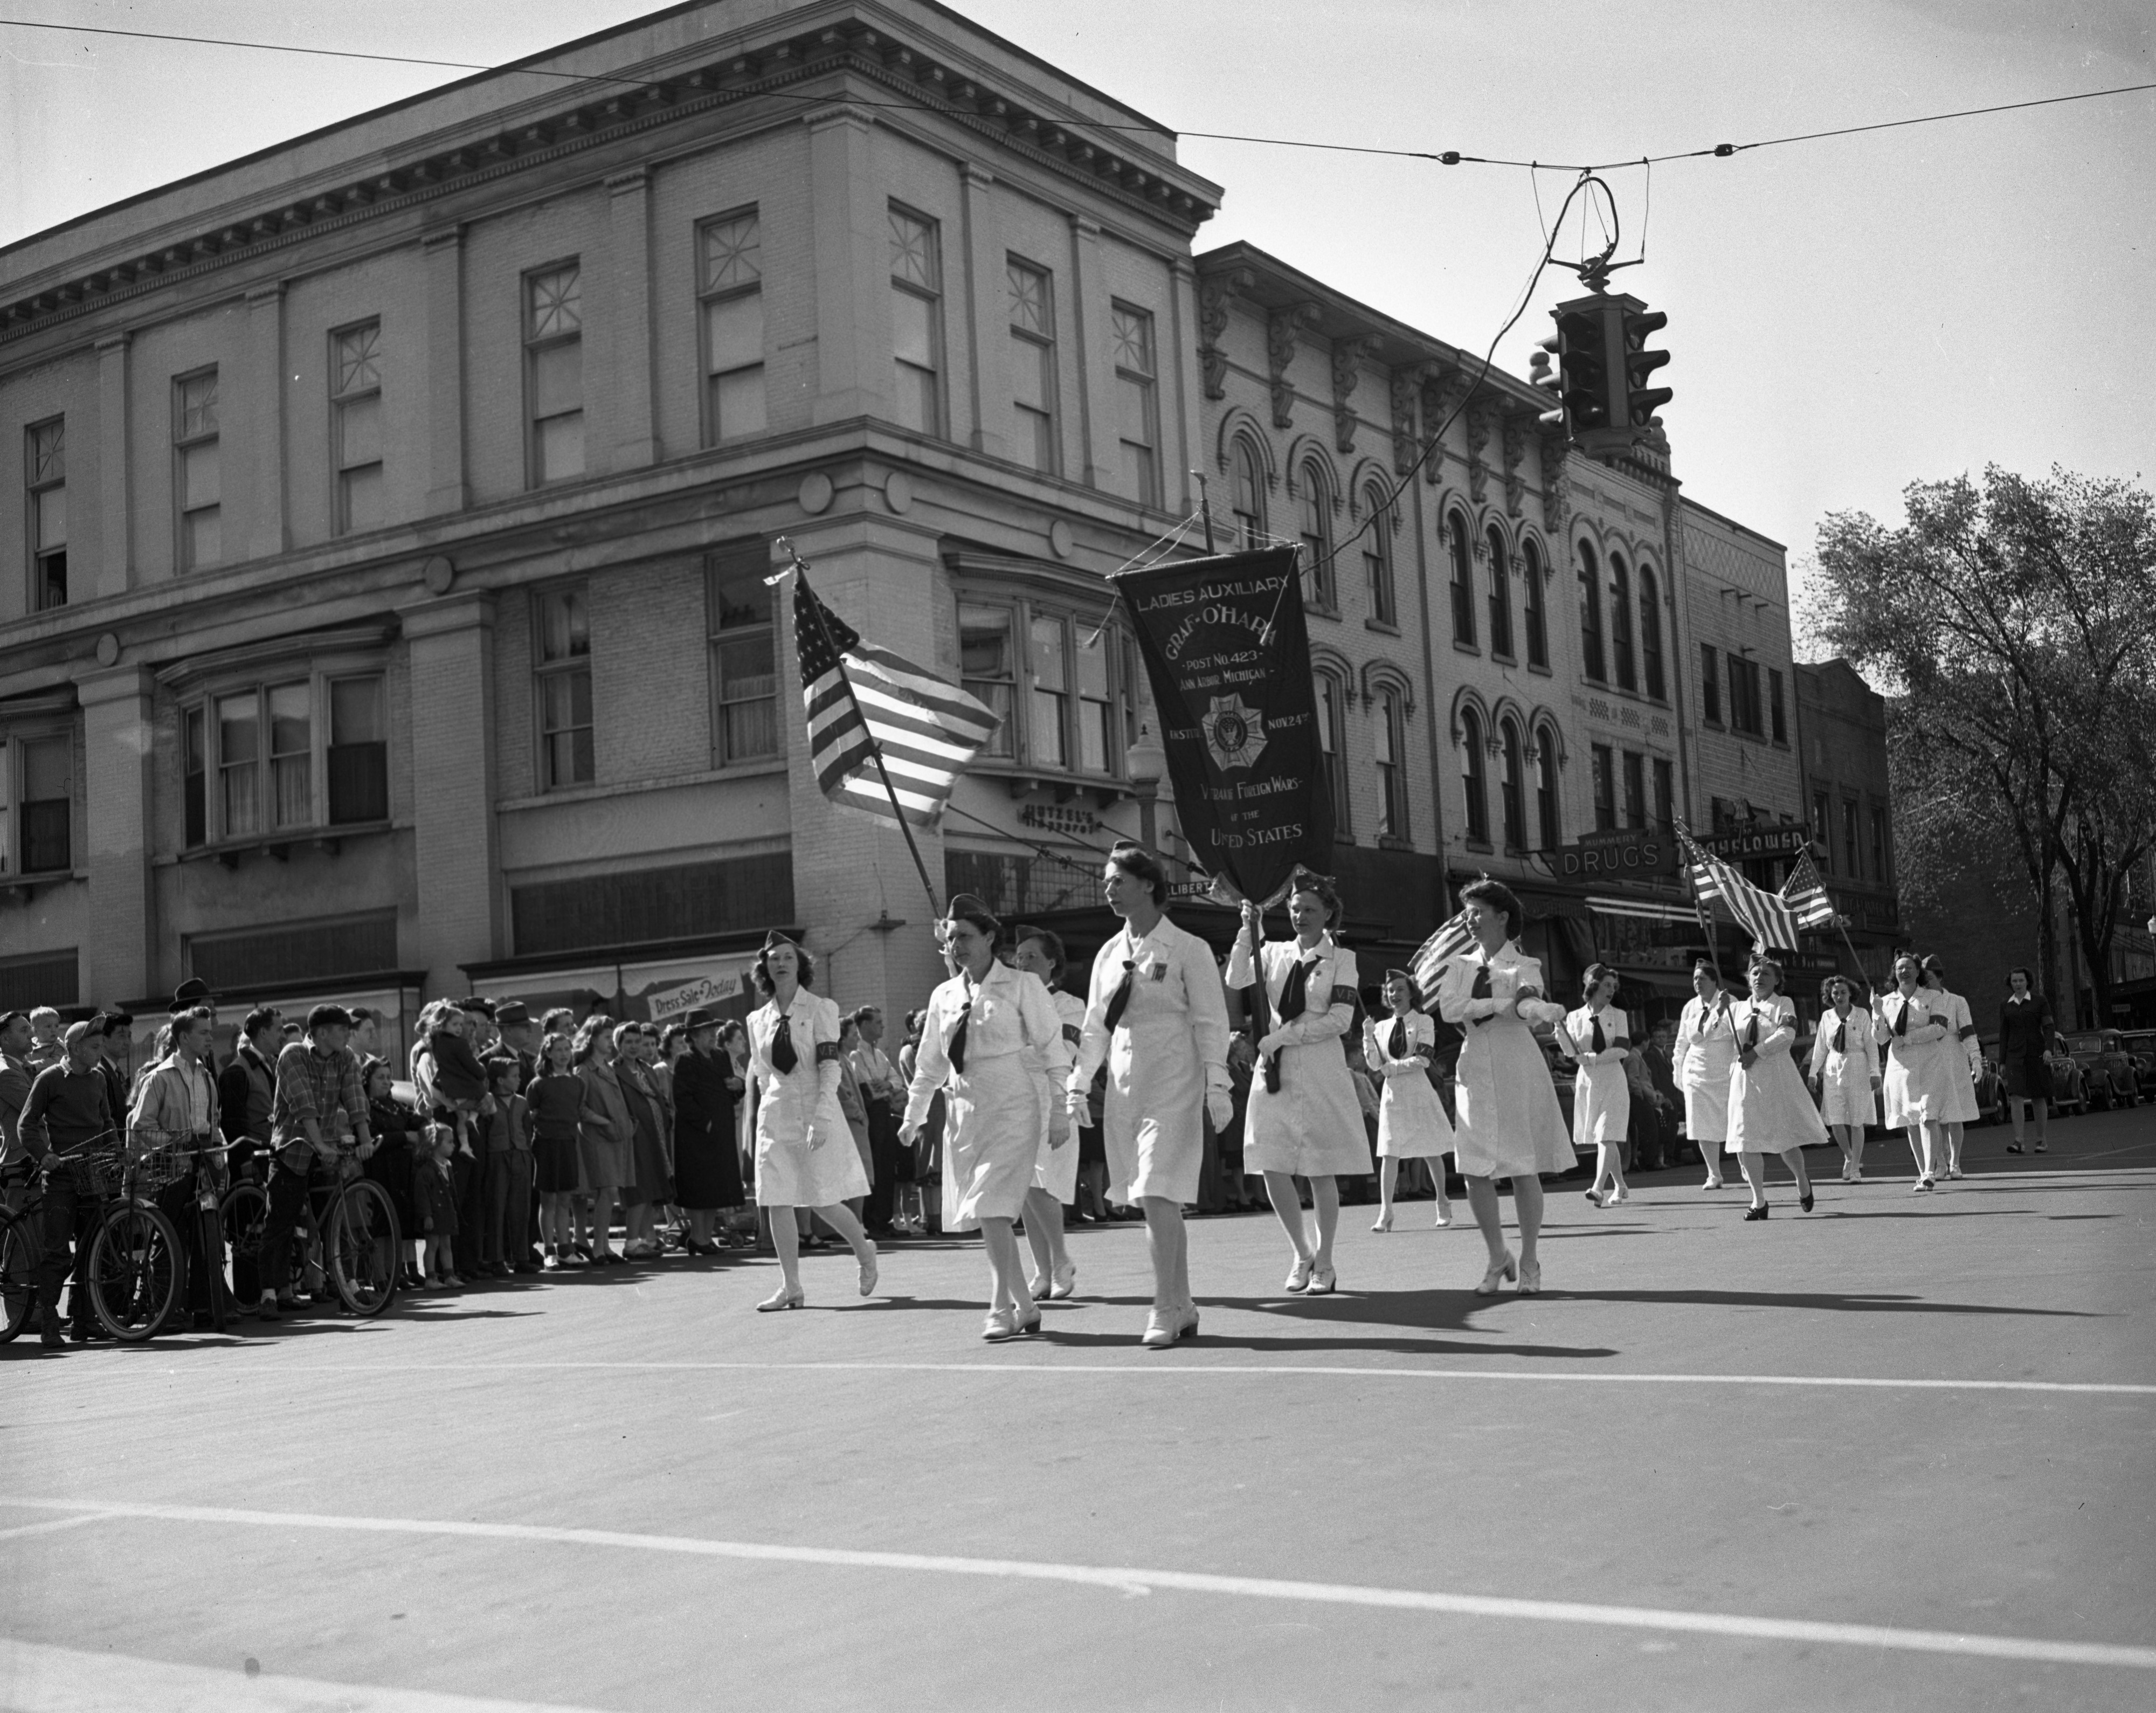 Ladies Auxiliary of the Graf-O'Hara VFW Post 423 March In Memorial Day Parade, May 1945 image